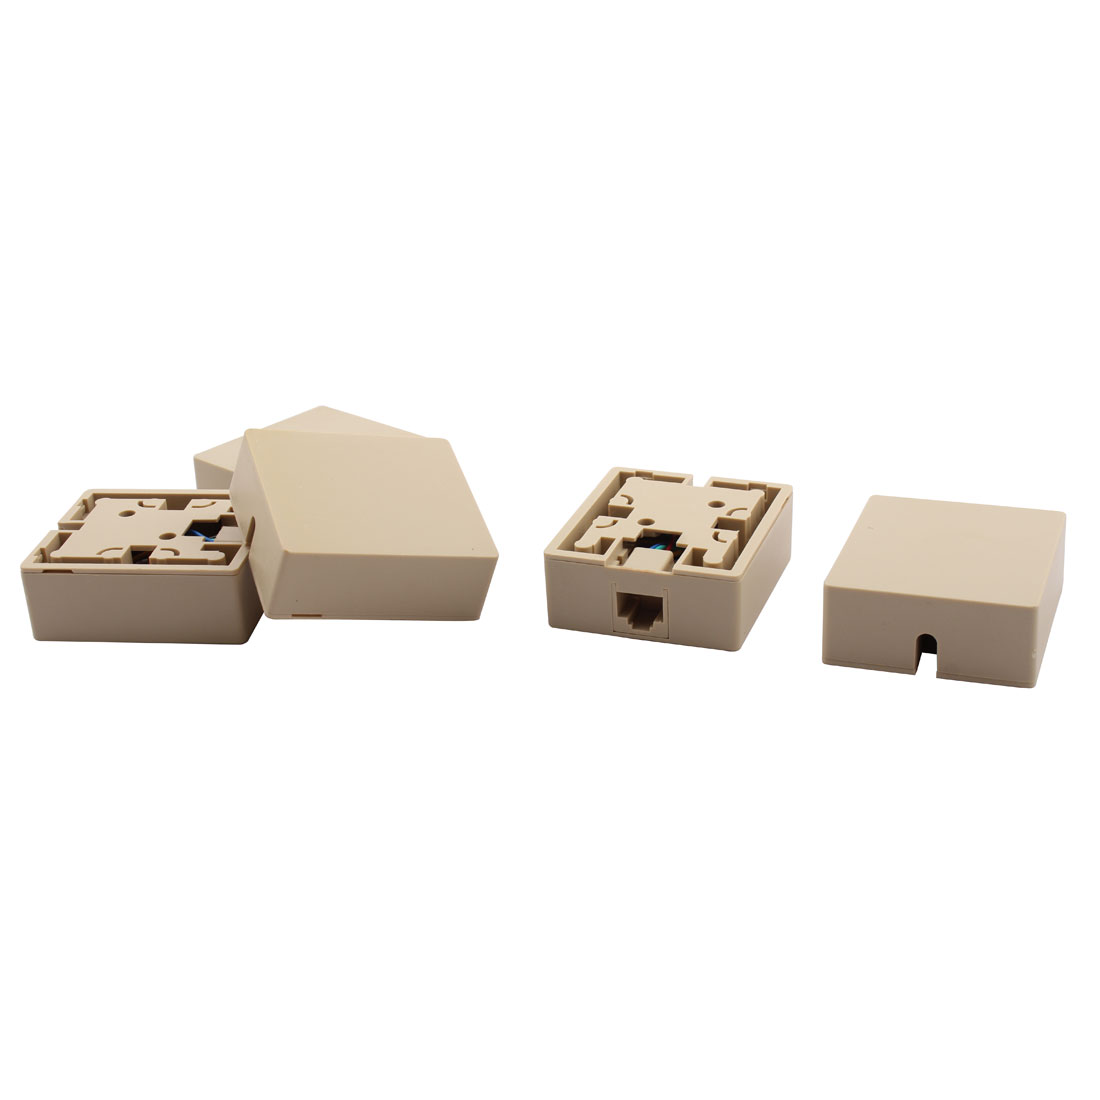 RJ45 8P8C Cat5 Ethernet Network Cable Wall Surface Mount Connector Box 5 Pcs